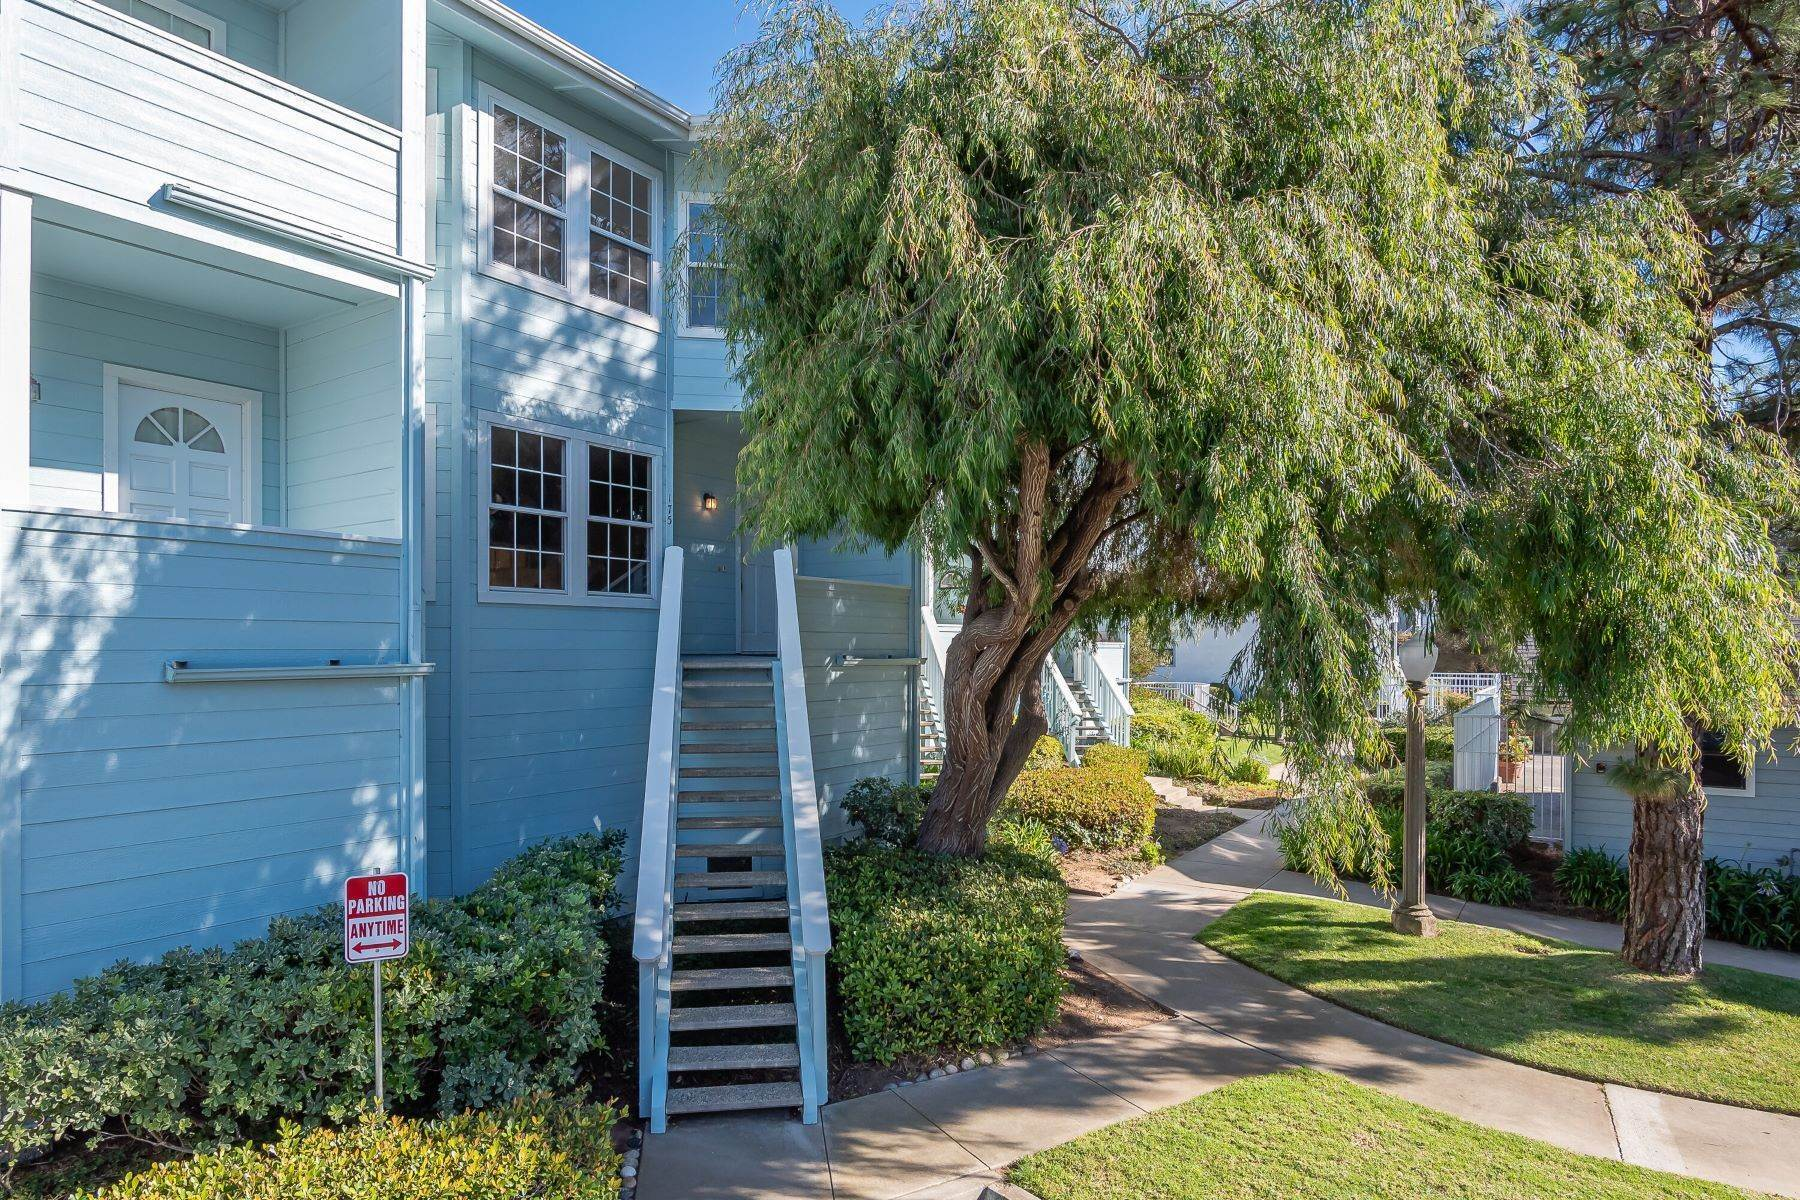 Condominiums for Sale at Incredibly Beautiful Bayshore Village Condo 175 Sandpiper Lane Morro Bay, California 93422 United States